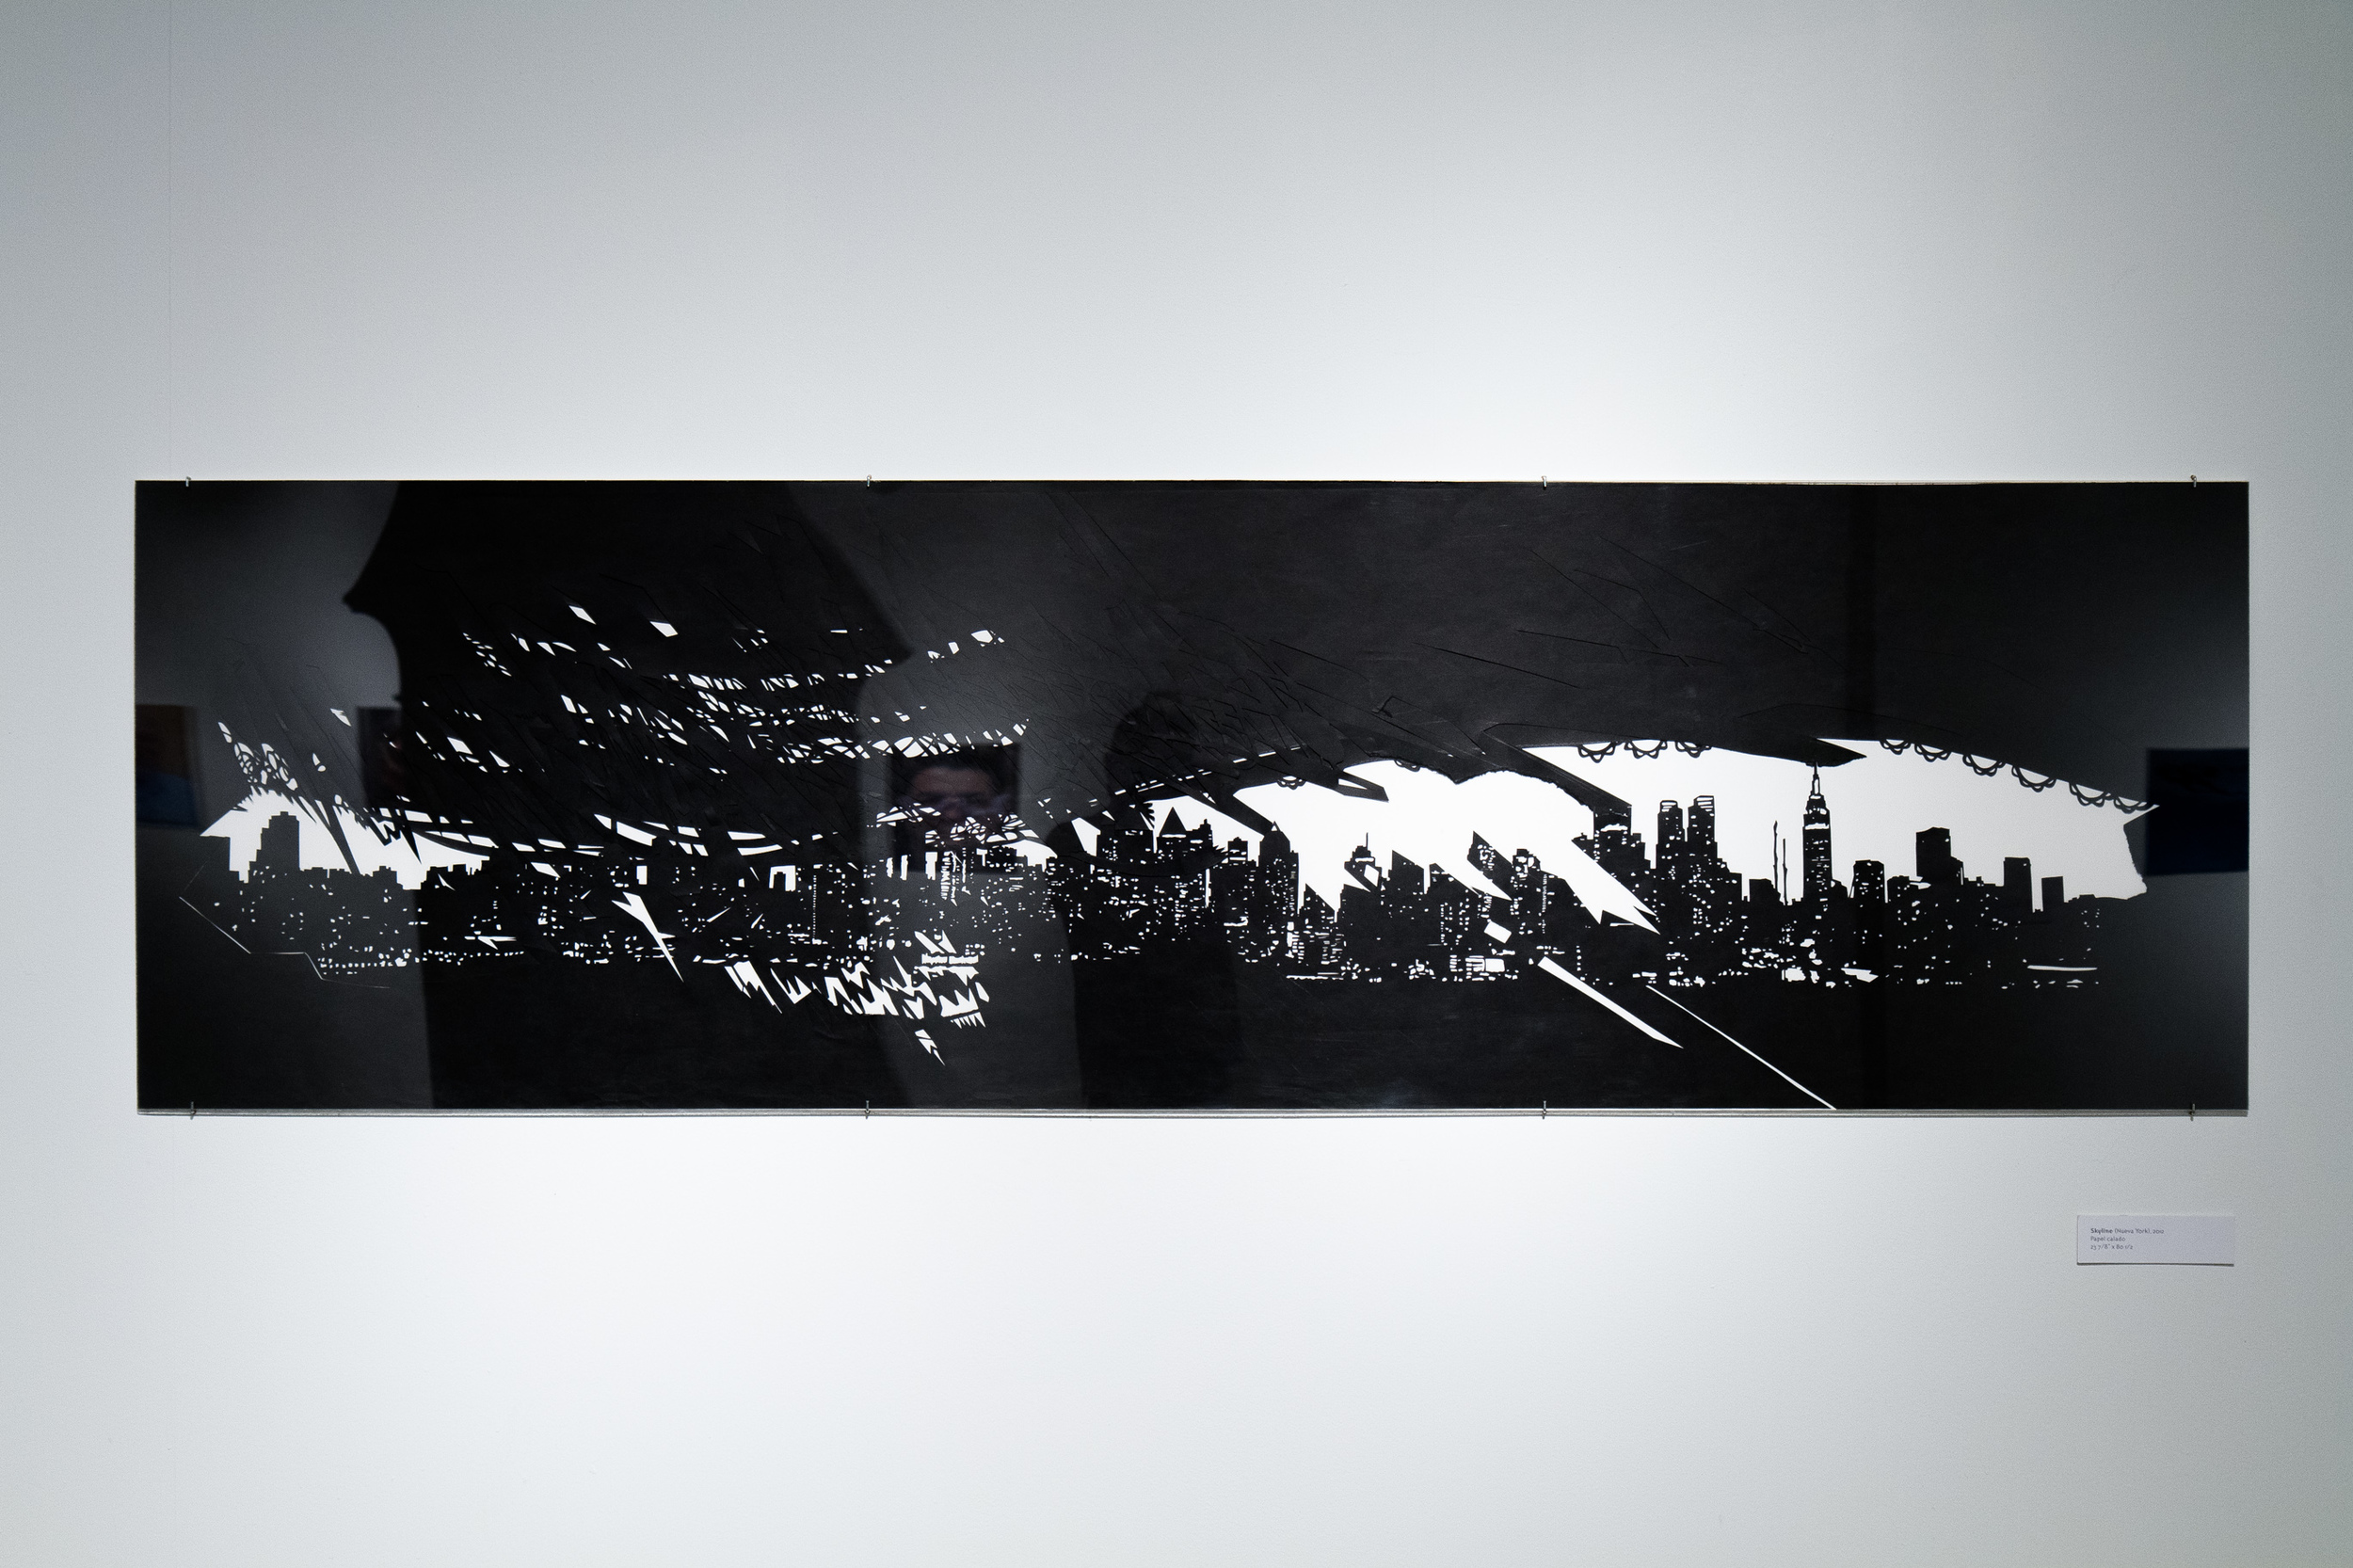 New York (Skyline series)  23.5 in x 80.5 in, collage, cut black Torinoko paper.